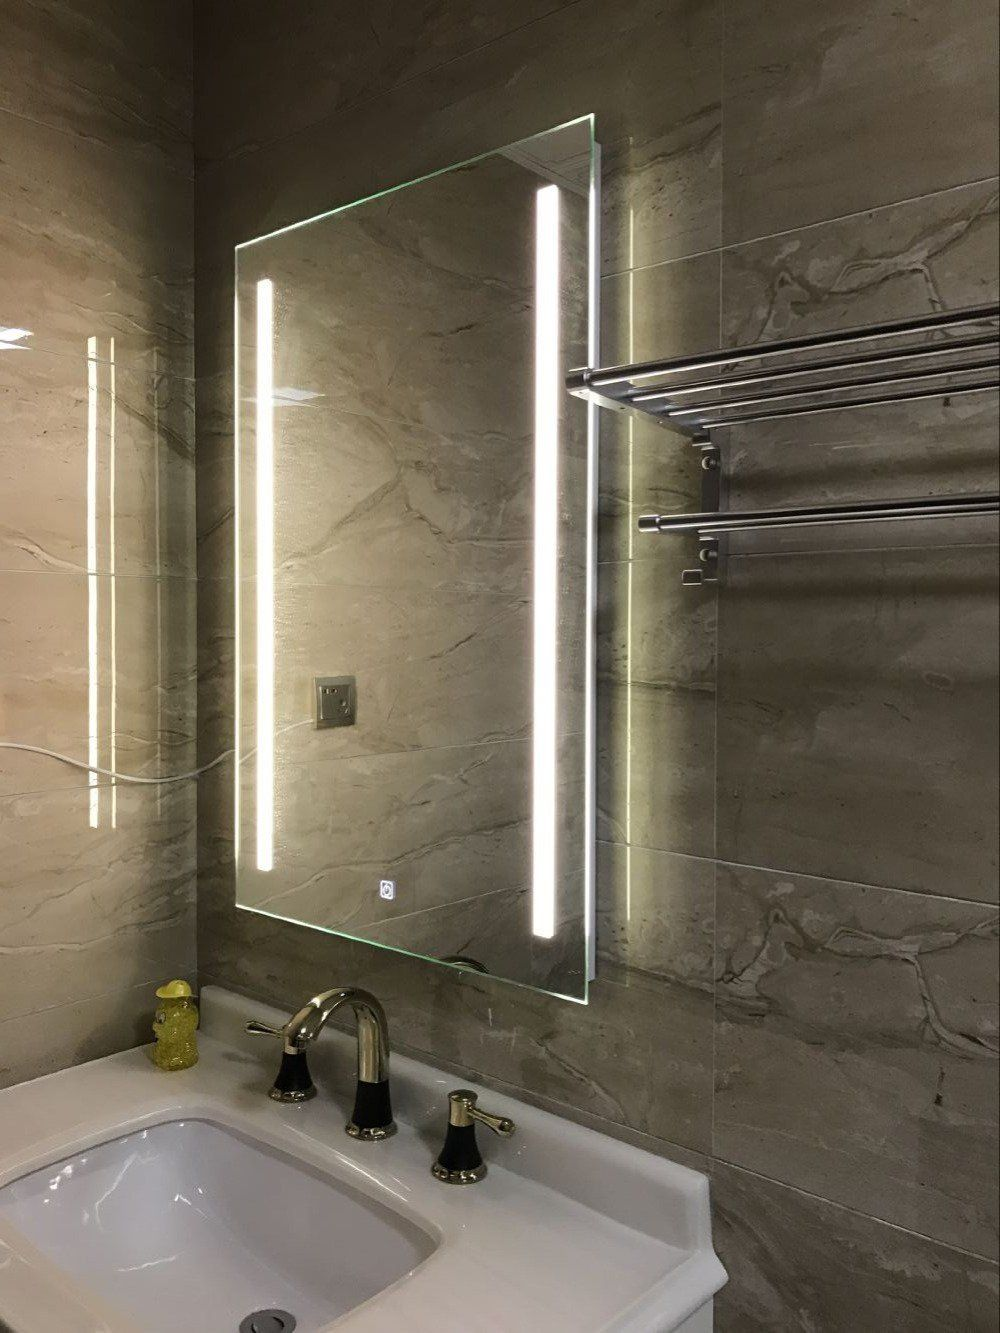 Type bath mirrorsframeless mirrors style modern light equipped frame material other brand name diyhd lenses material silver mirror shape rectangle